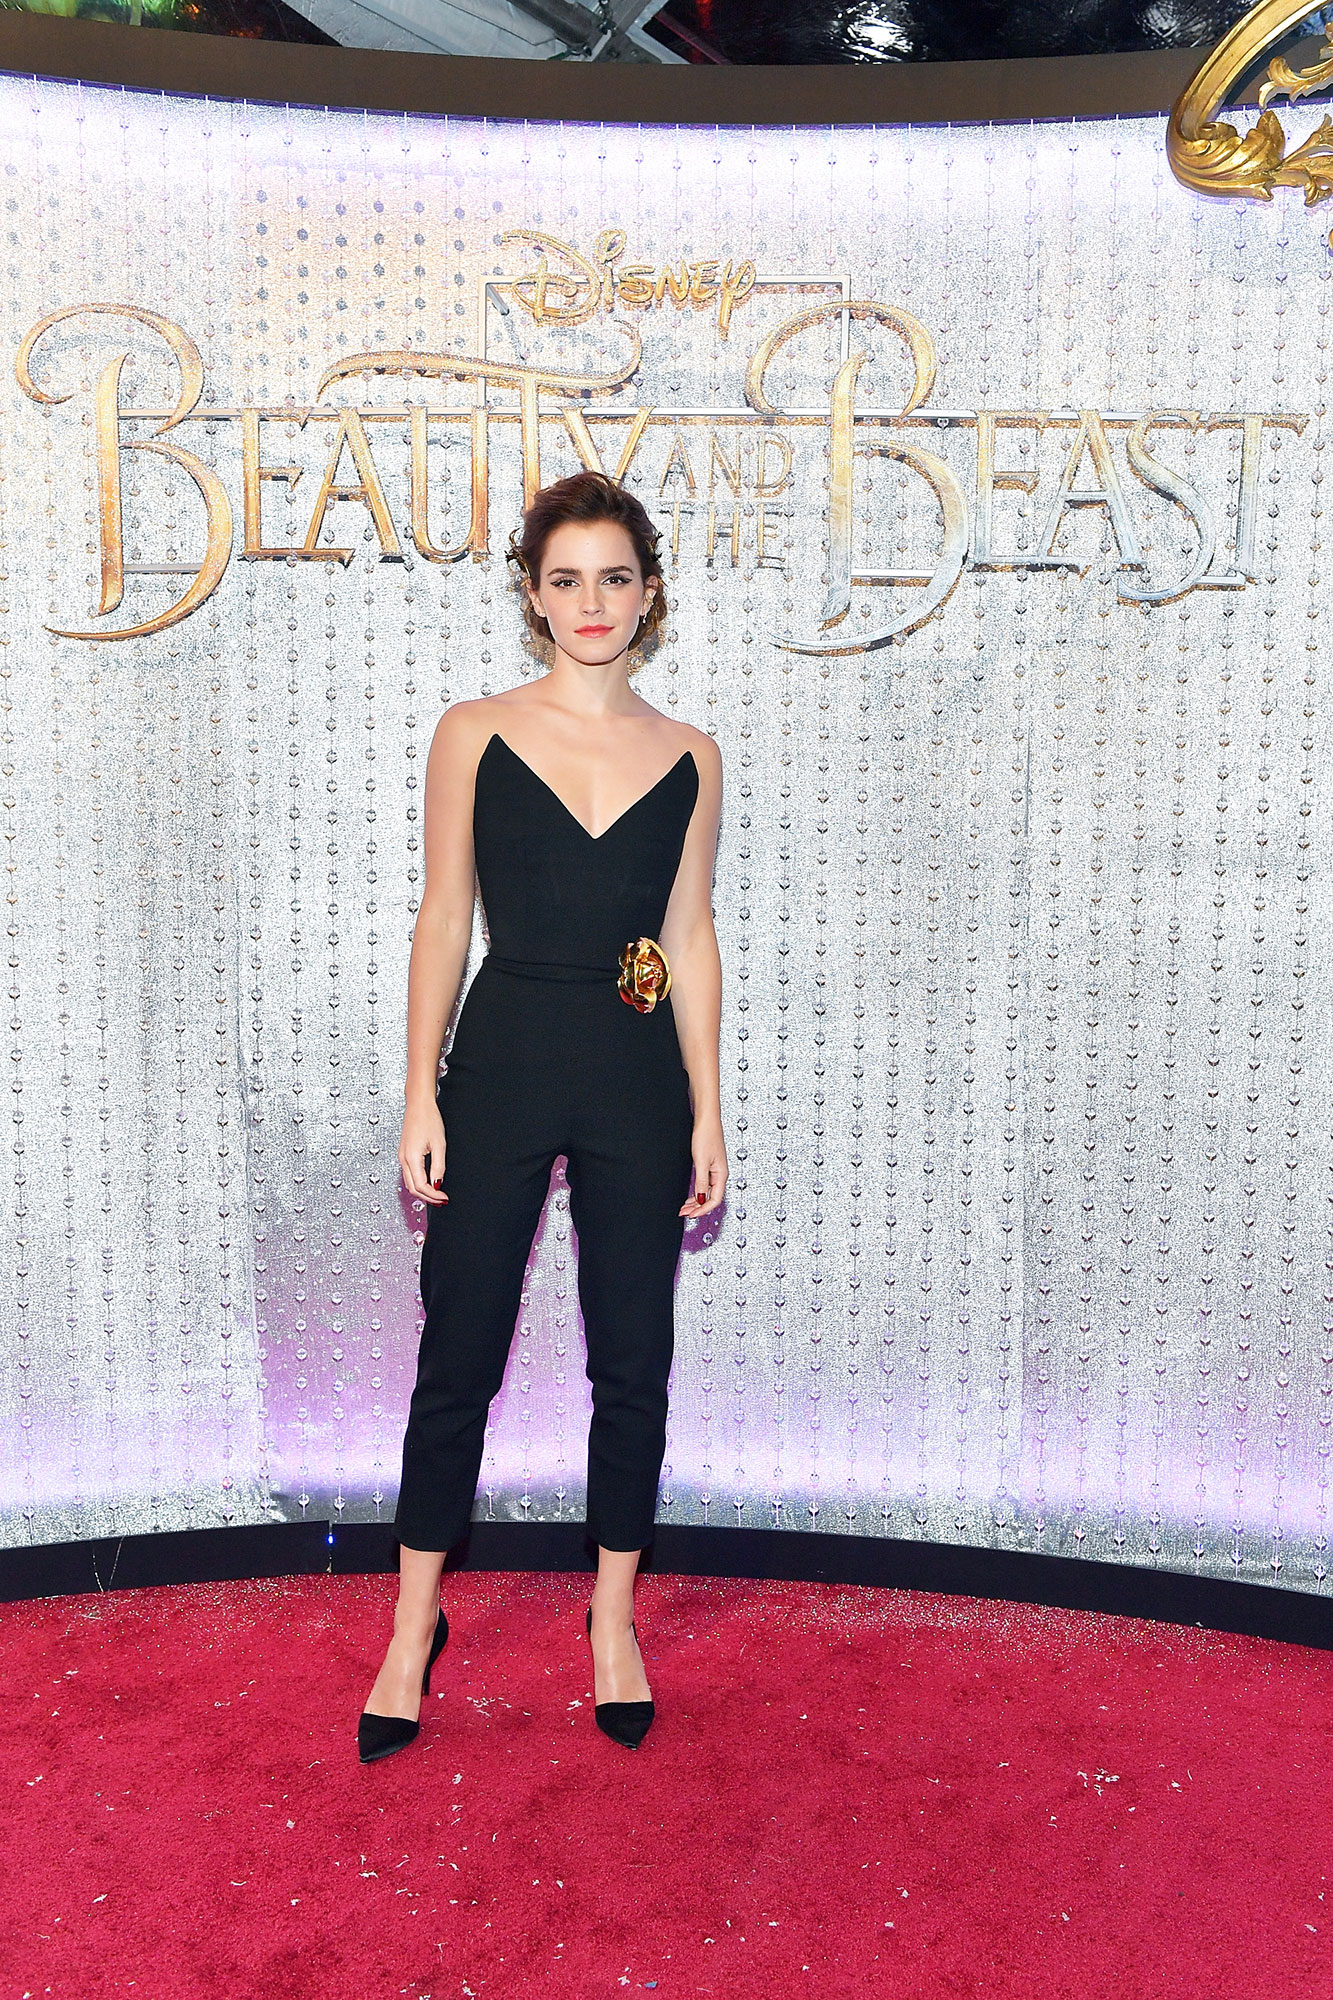 Emma Watson birthday red carpet outfits - Proving that Belle is, indeed, a badass, the British beauty rocked a black Oscar de la Renta jumpsuit at the Hollywood premiere of Beauty and the Beast .